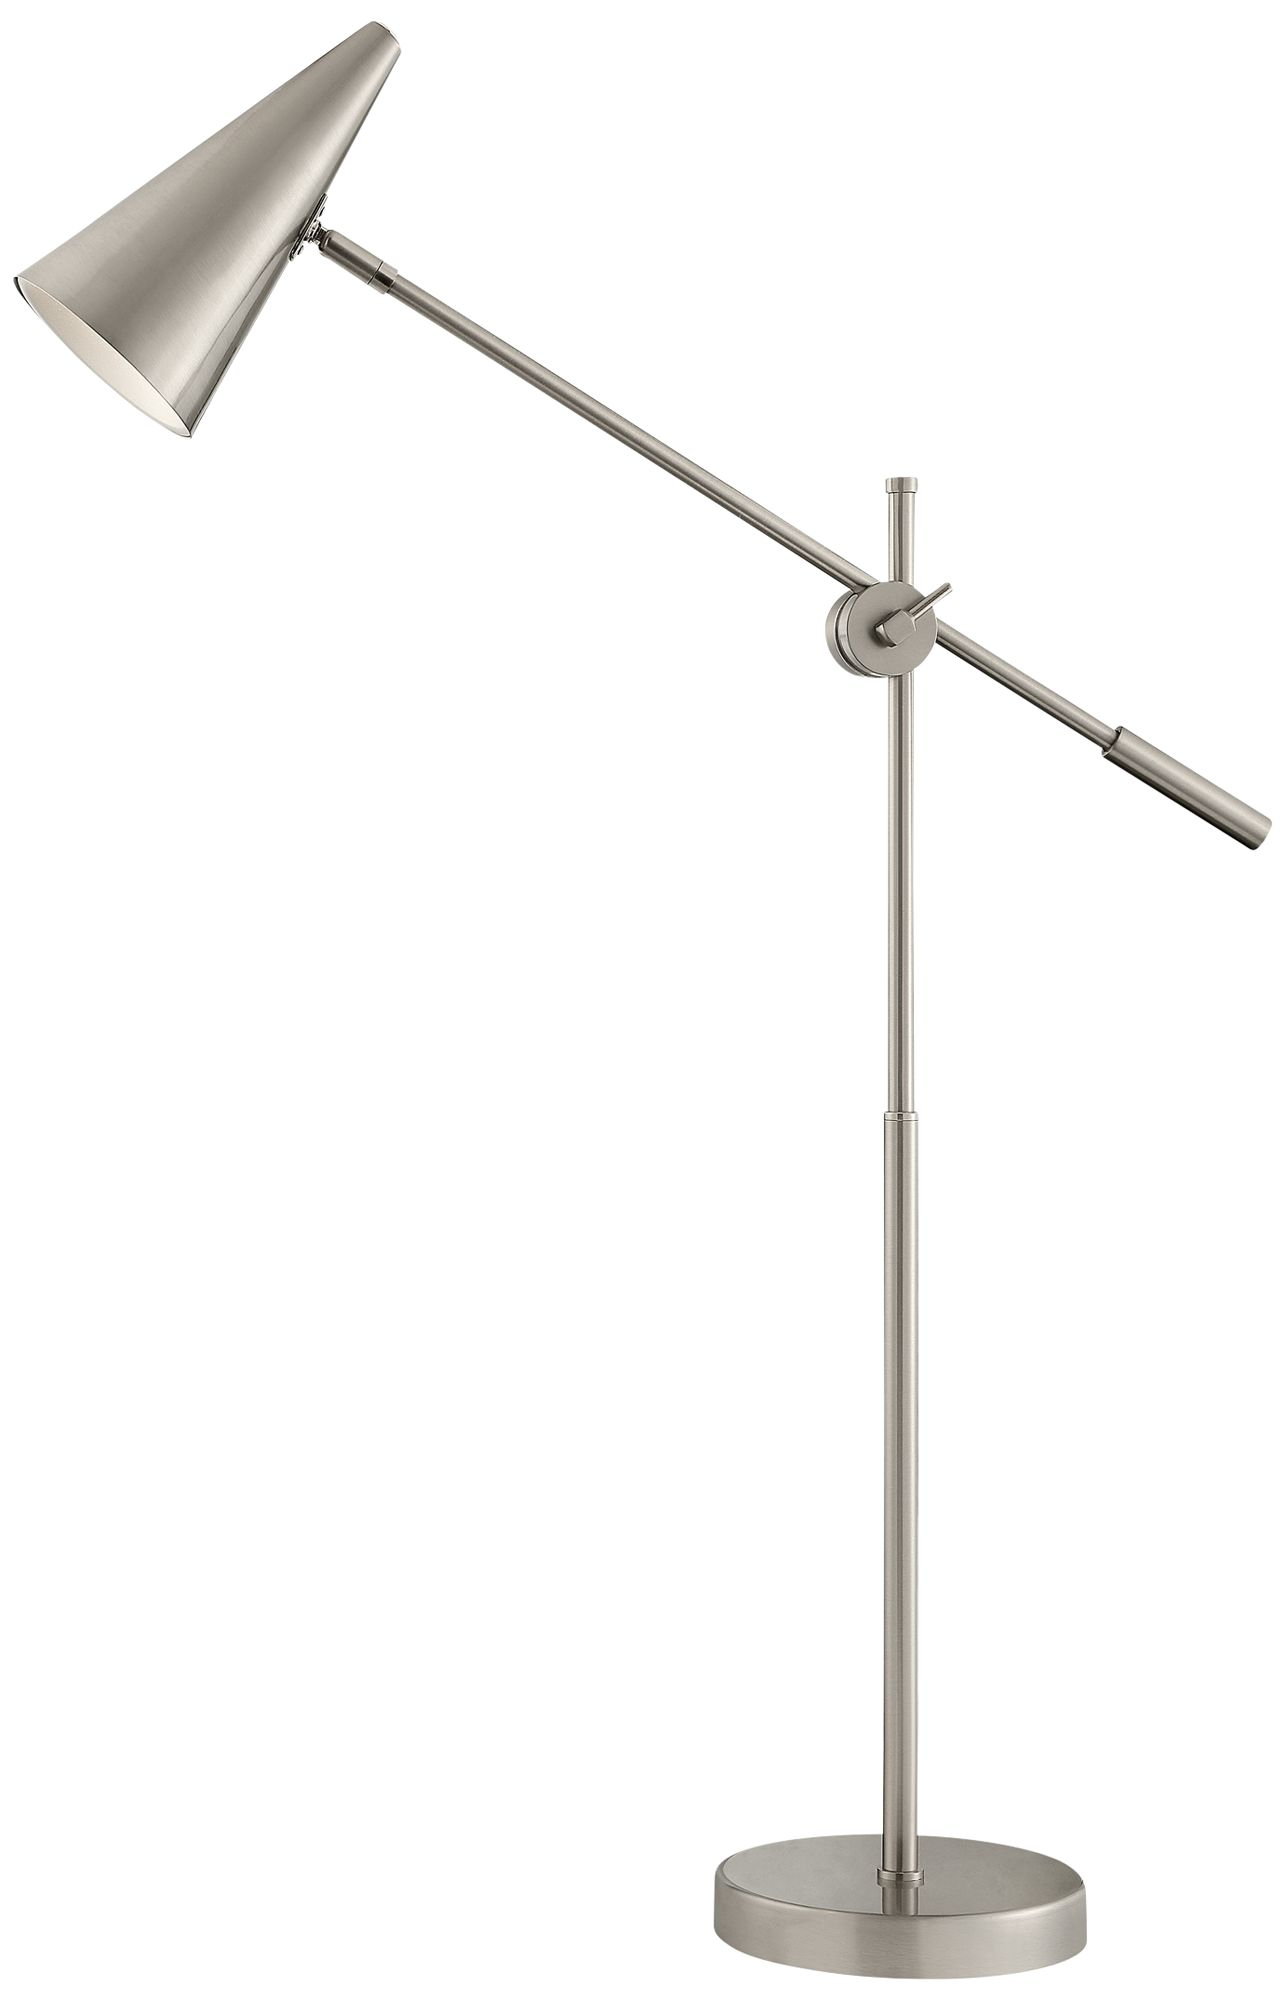 48 In. Or Less - Small, Arc Lamps, Floor Lamps | Lamps Plus